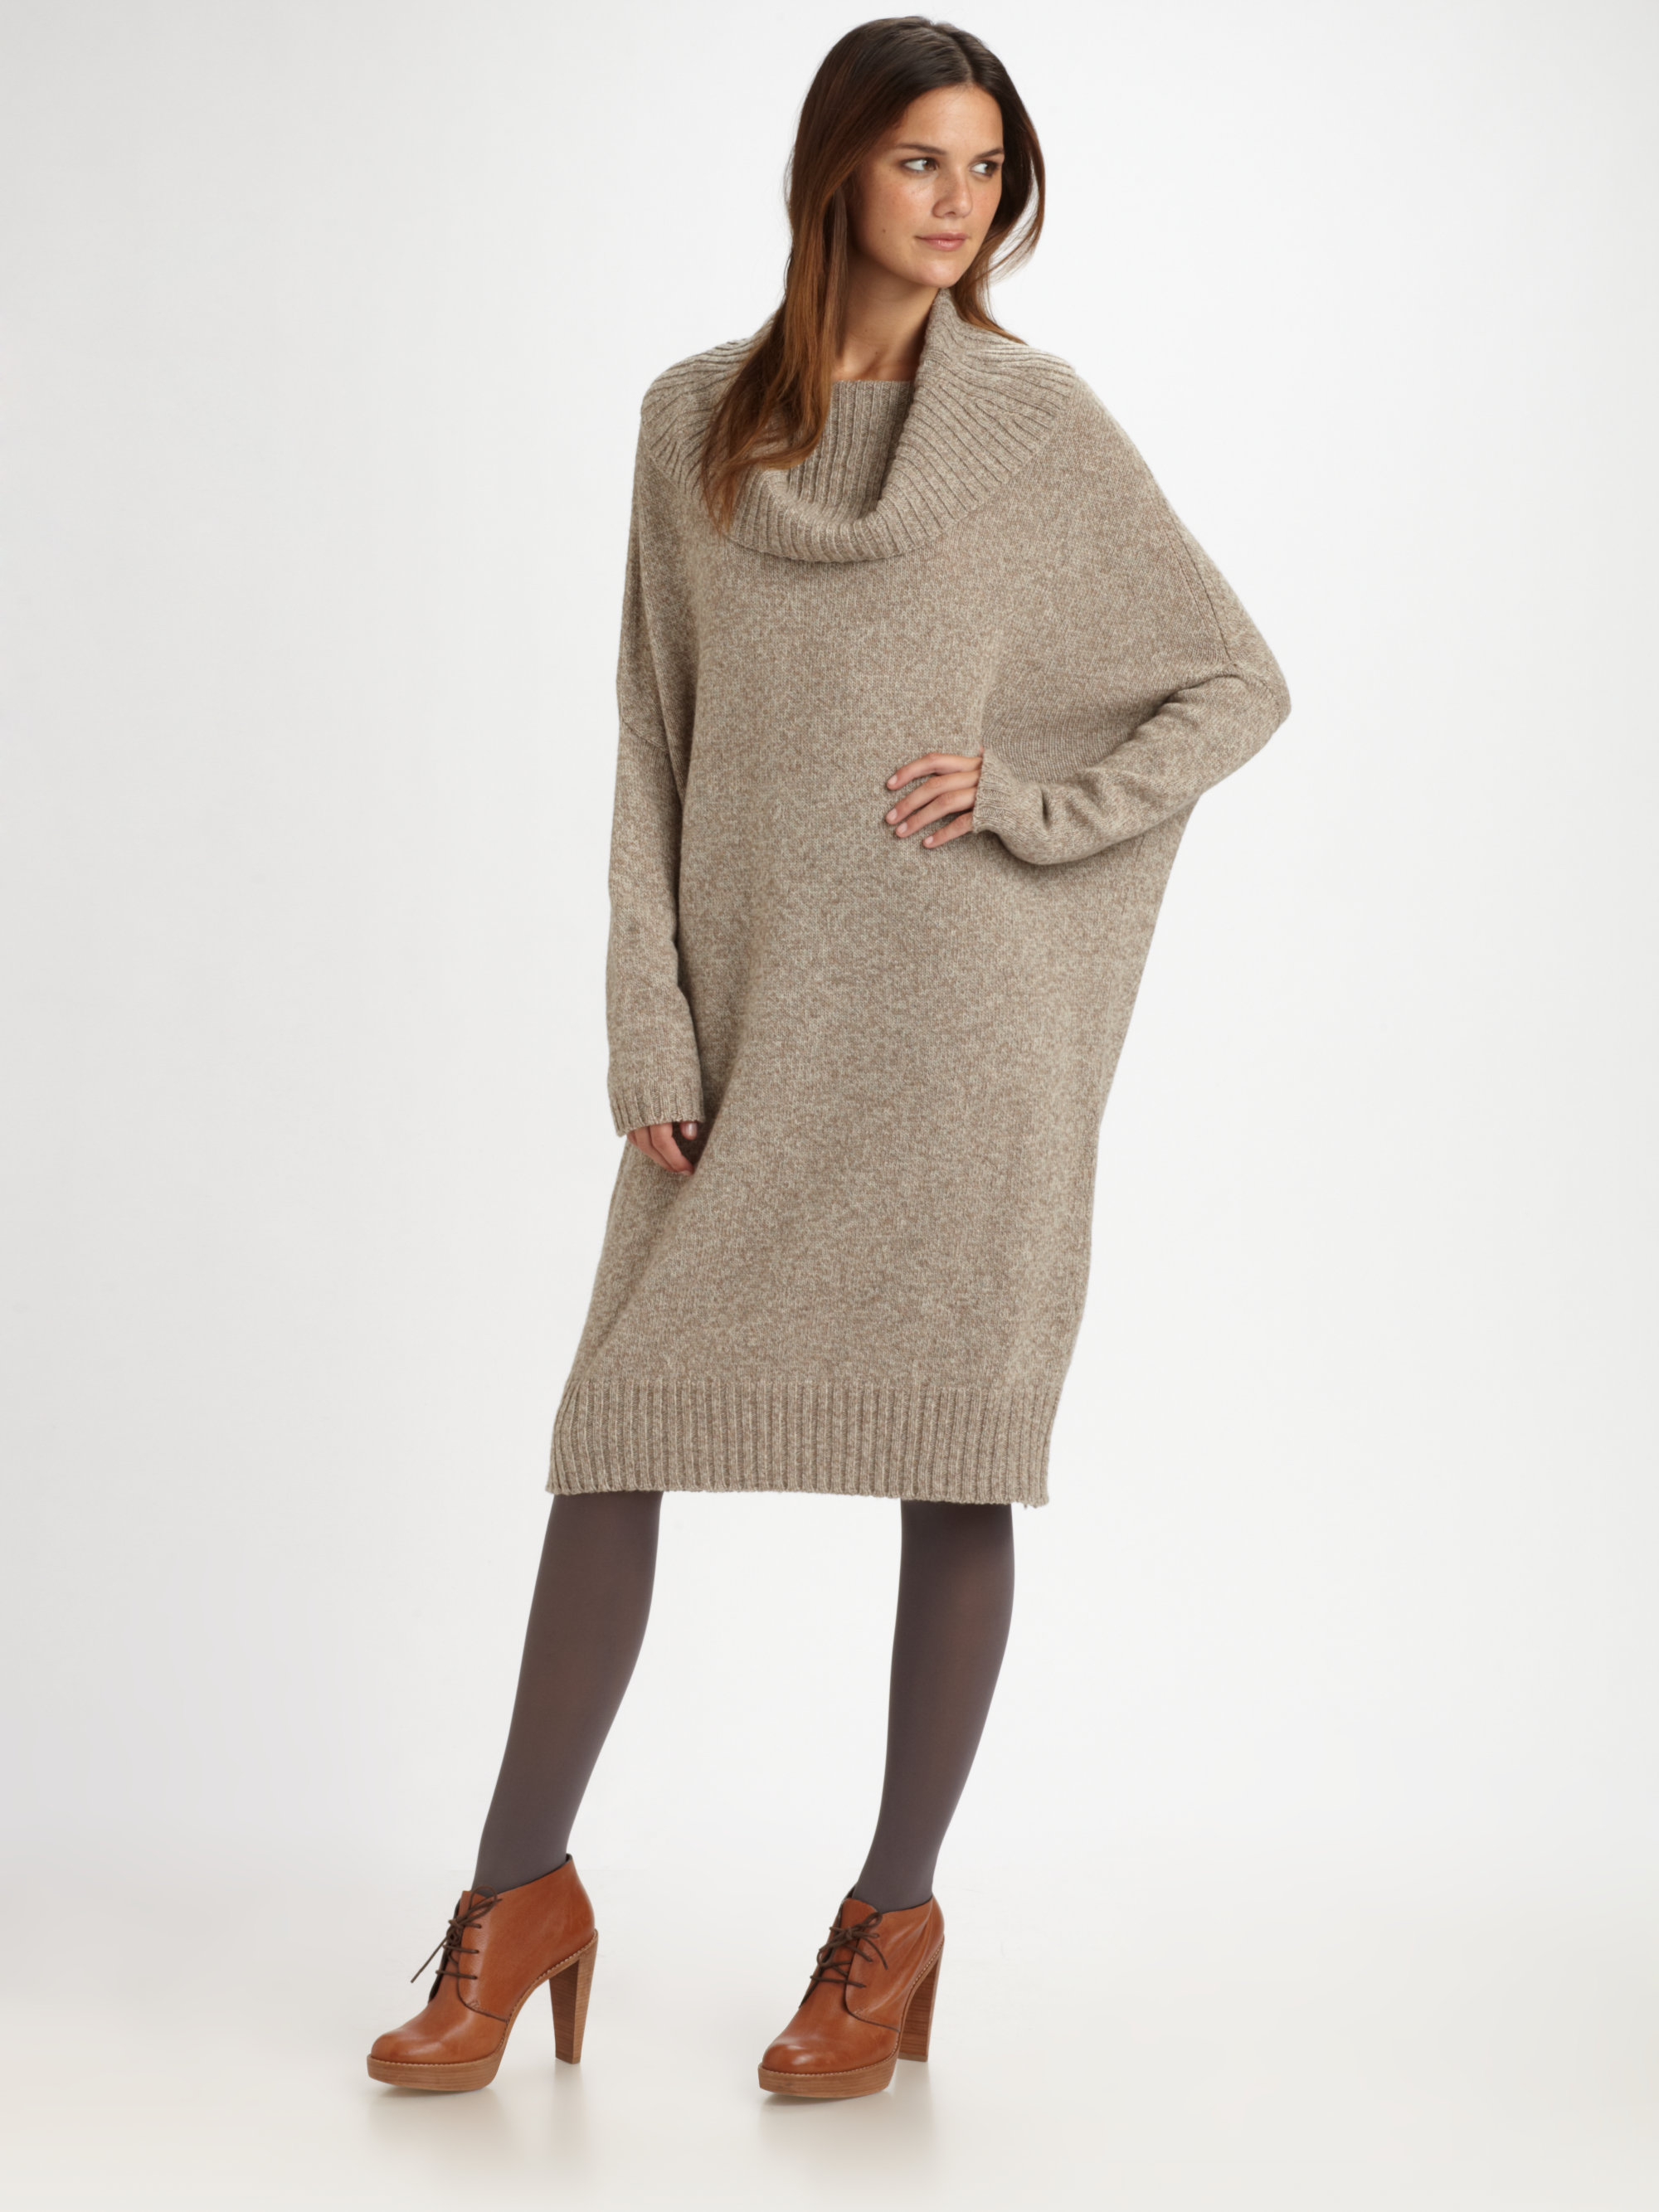 Weekend by maxmara Oversized Tunic Sweater Dress in Natural | Lyst